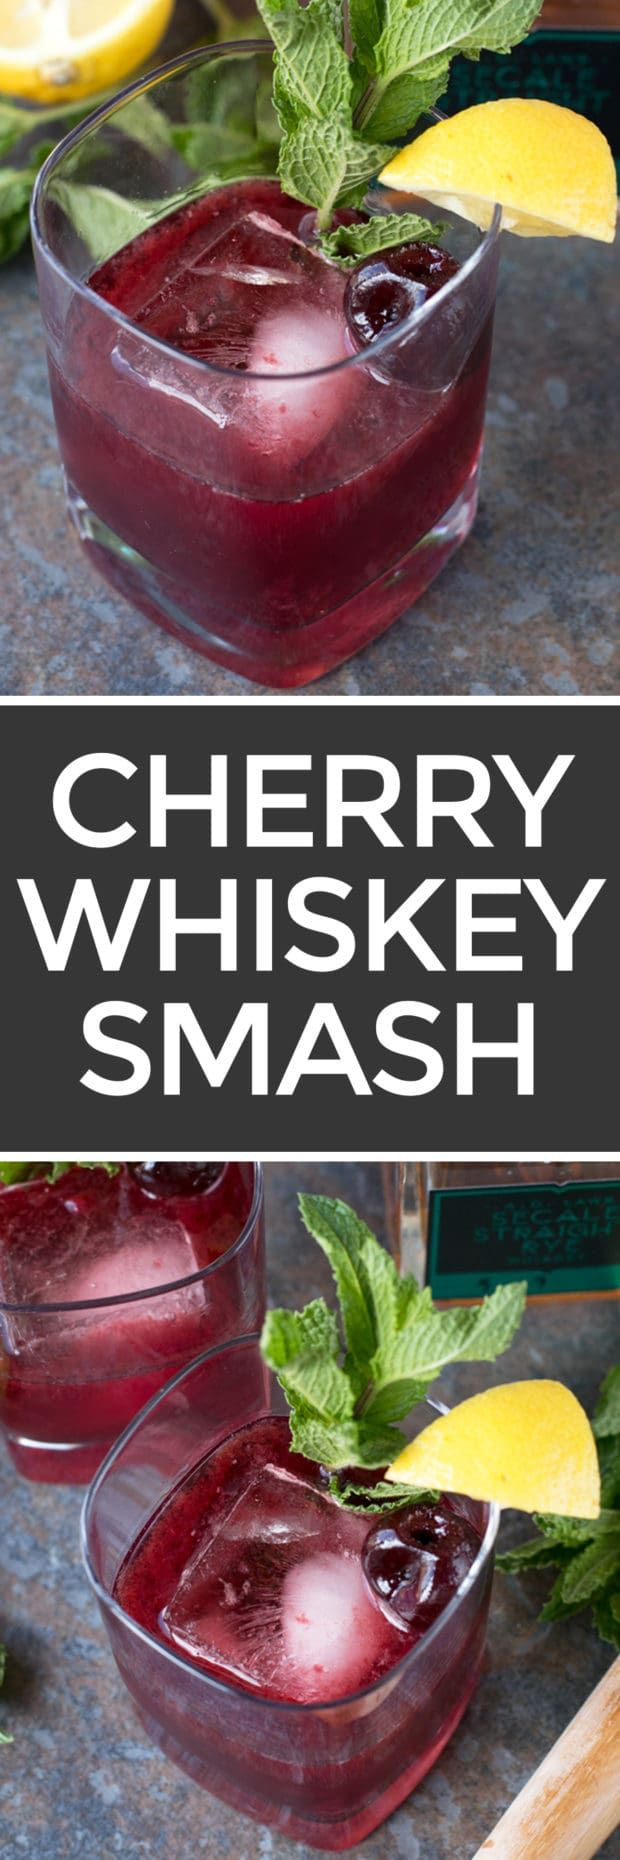 I've got your new favorite ladies night cocktail right here, gals! A Cherry Whiskey Smash is the fresh and fruity, spirit-forward cocktail your summer sippin' agenda is begging for. Cherry Whiskey Smash | cakenknife.com #cocktail